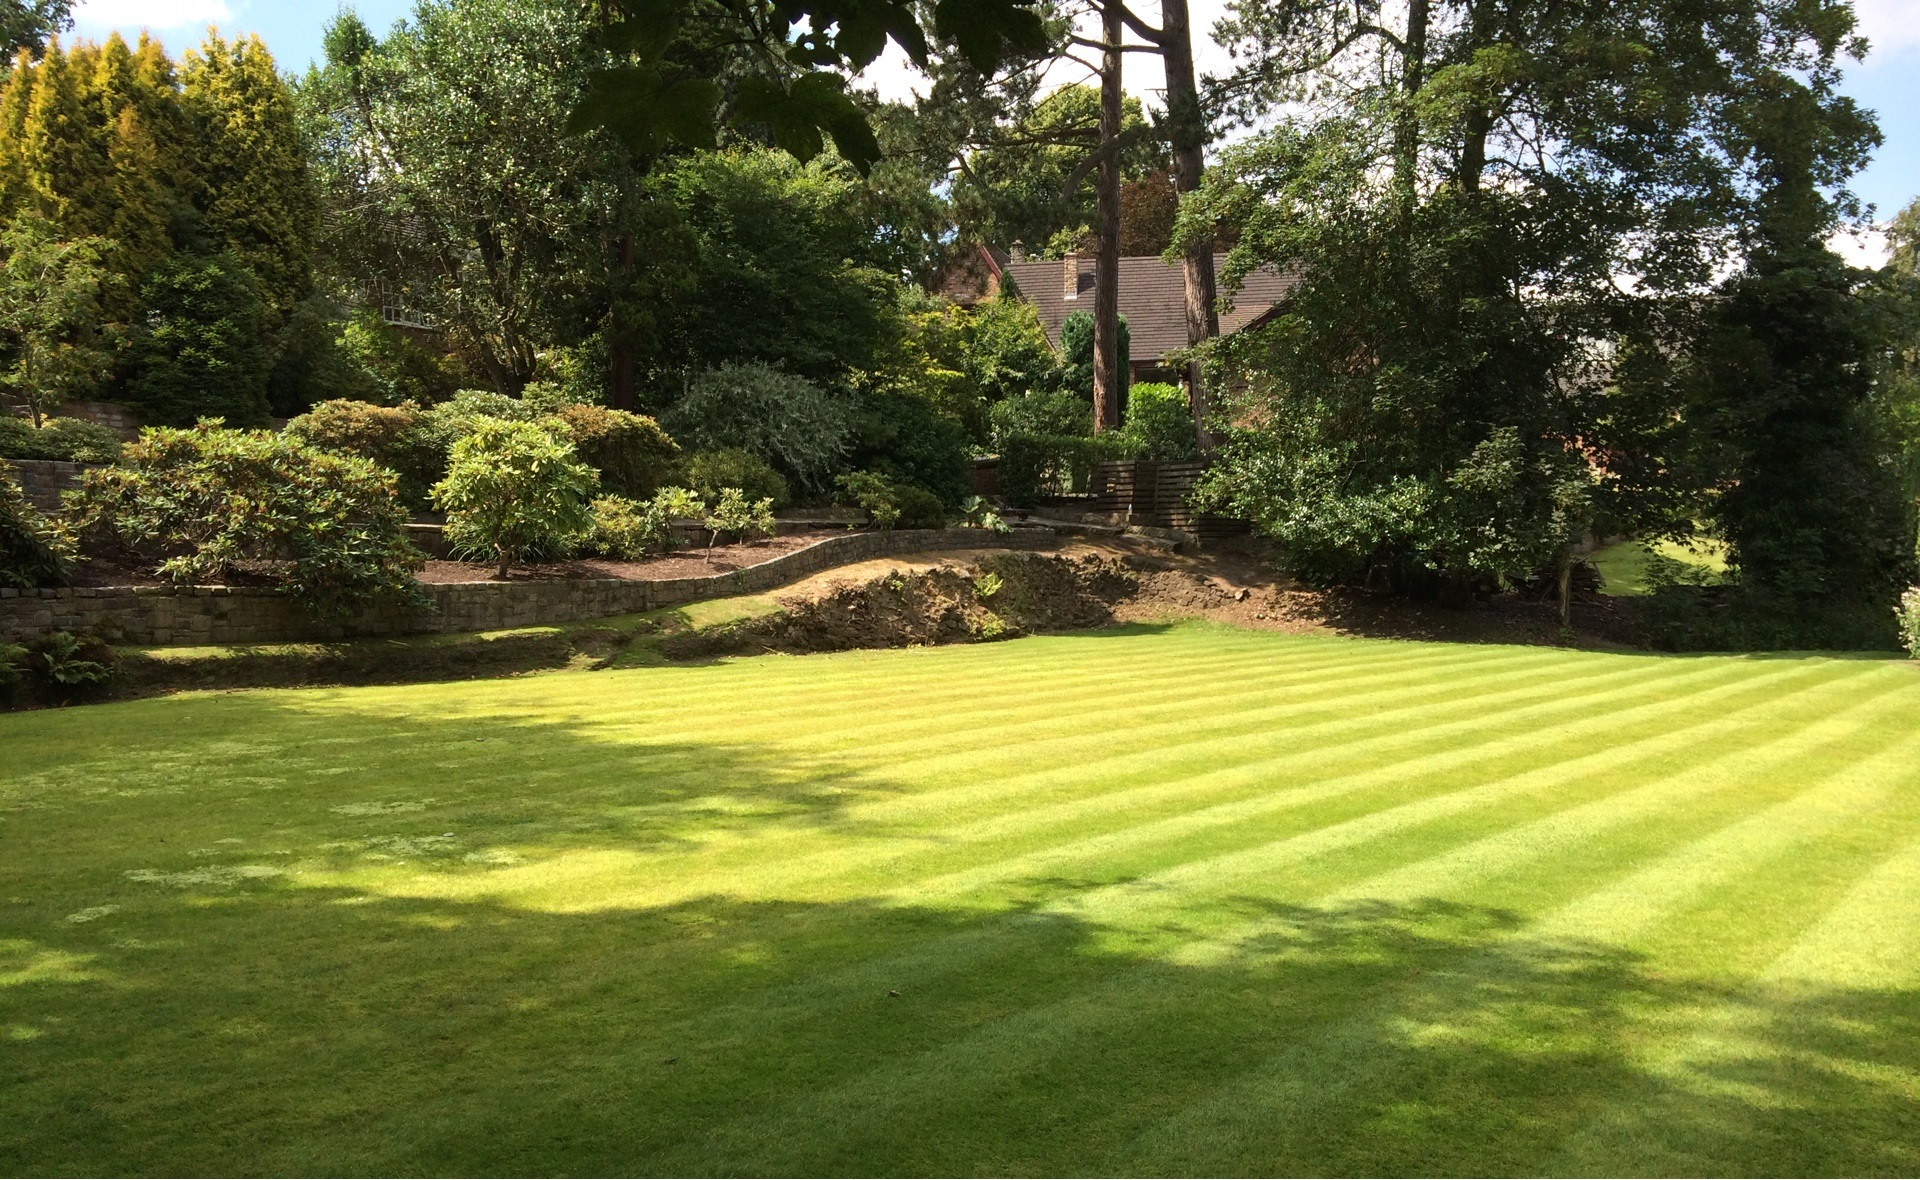 Landscape Gardener in Newcastle under Lyme - A Lawn left with the customary football pitch stripe